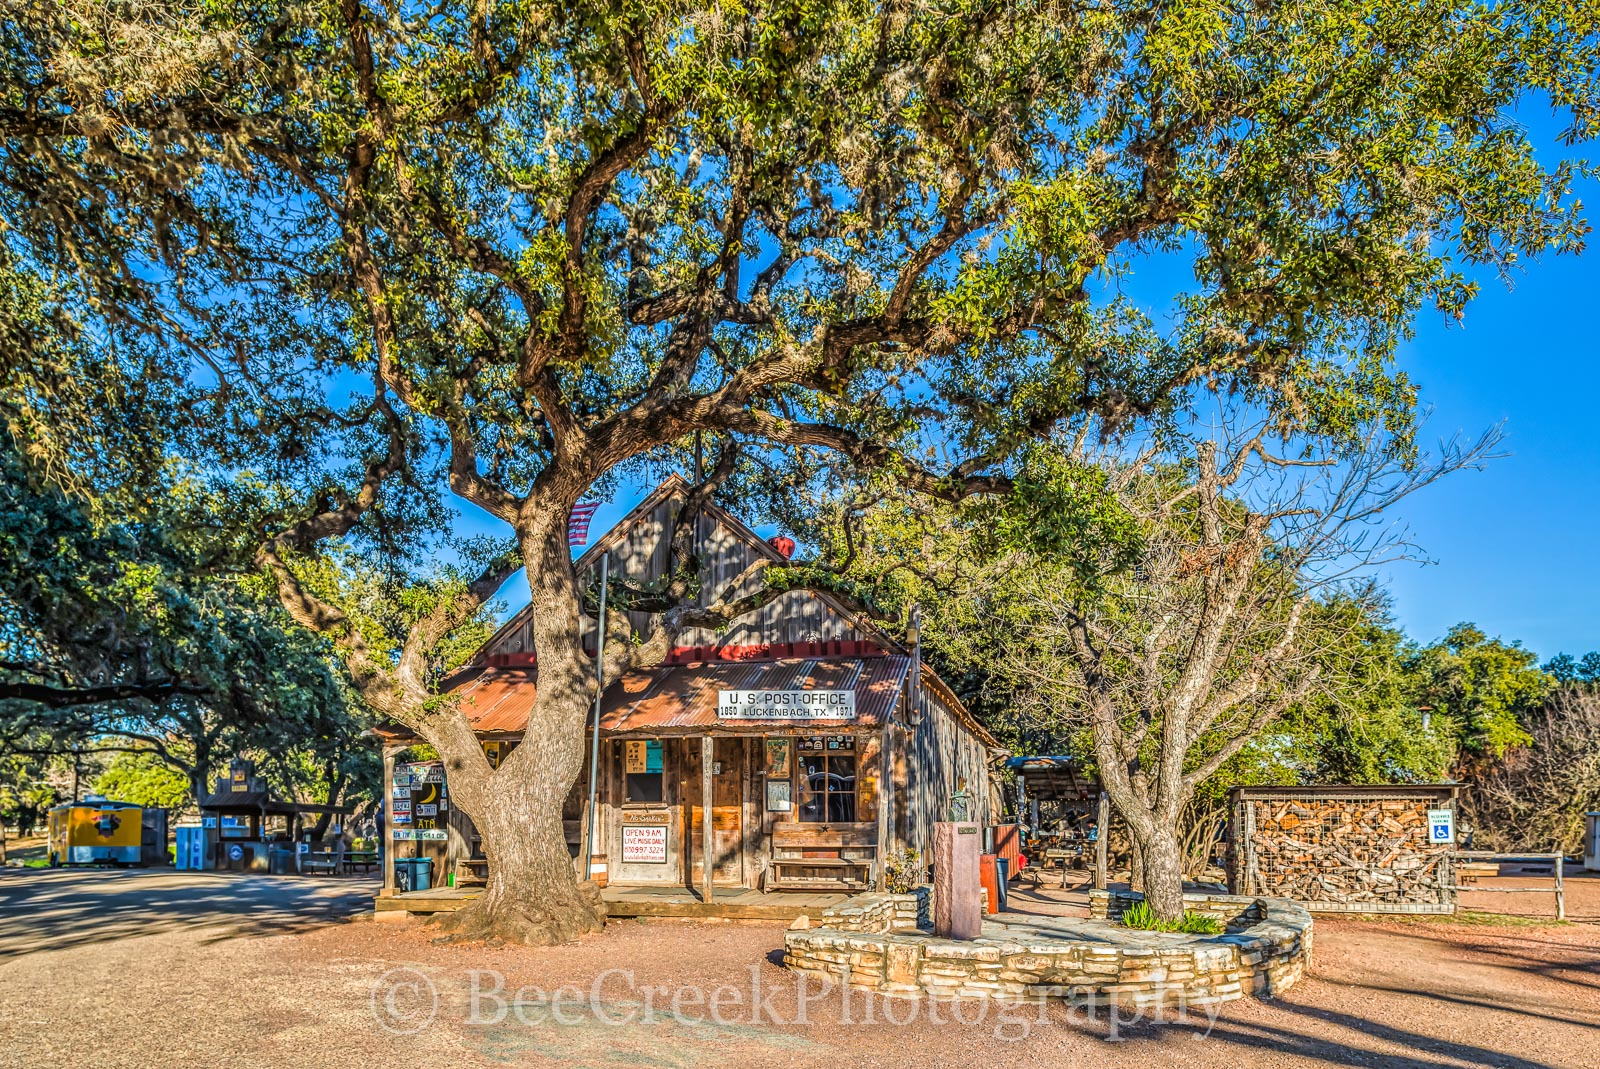 Texas, Gary P Nunn, General Store, Los Lobos, Luckenbach, Waylon Jennings, Willie Nelson, beer gardens, country music, dance hall, saloon, texas hill country. texas landscape, general store, laid back, photo